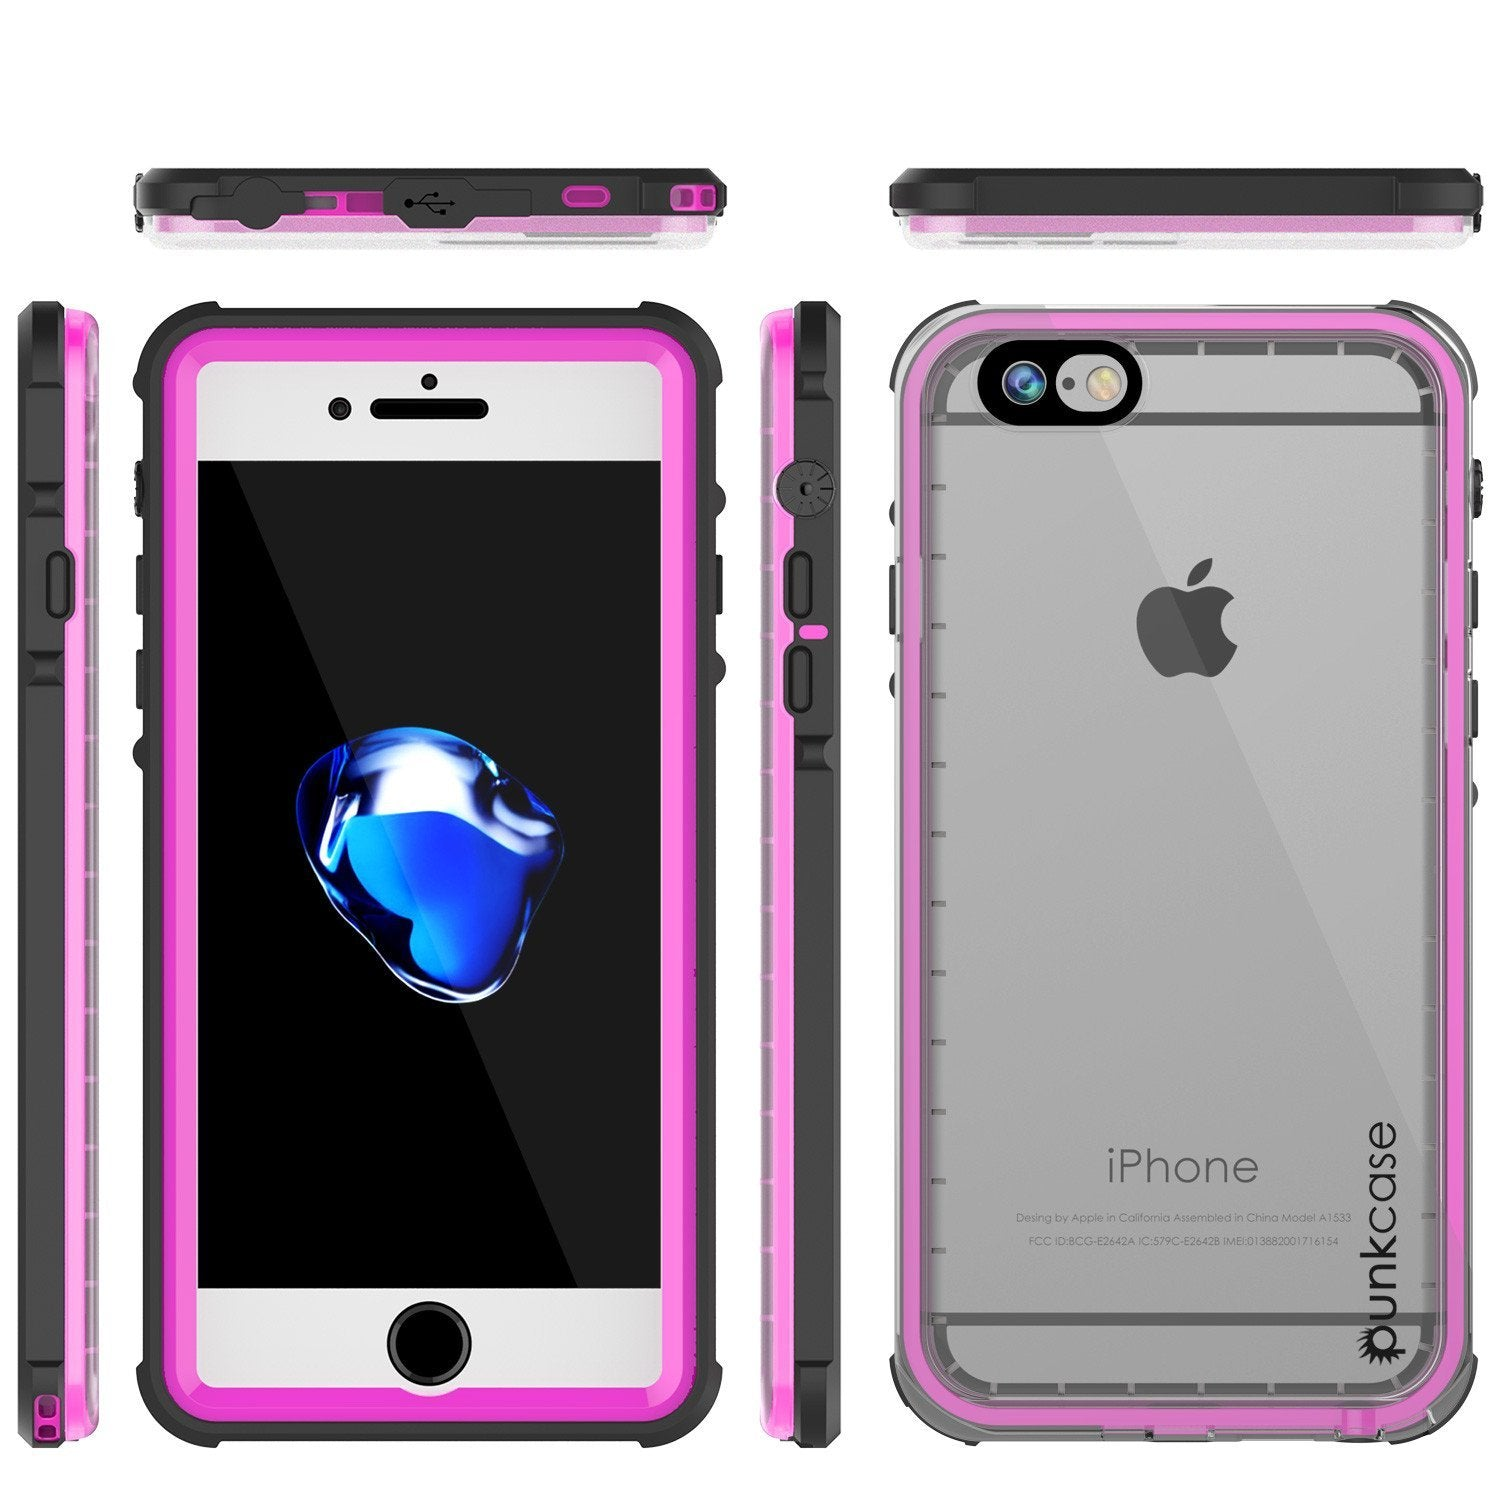 Apple iPhone 8 Waterproof Case, PUNKcase CRYSTAL Pink W/ Attached Screen Protector  | Warranty